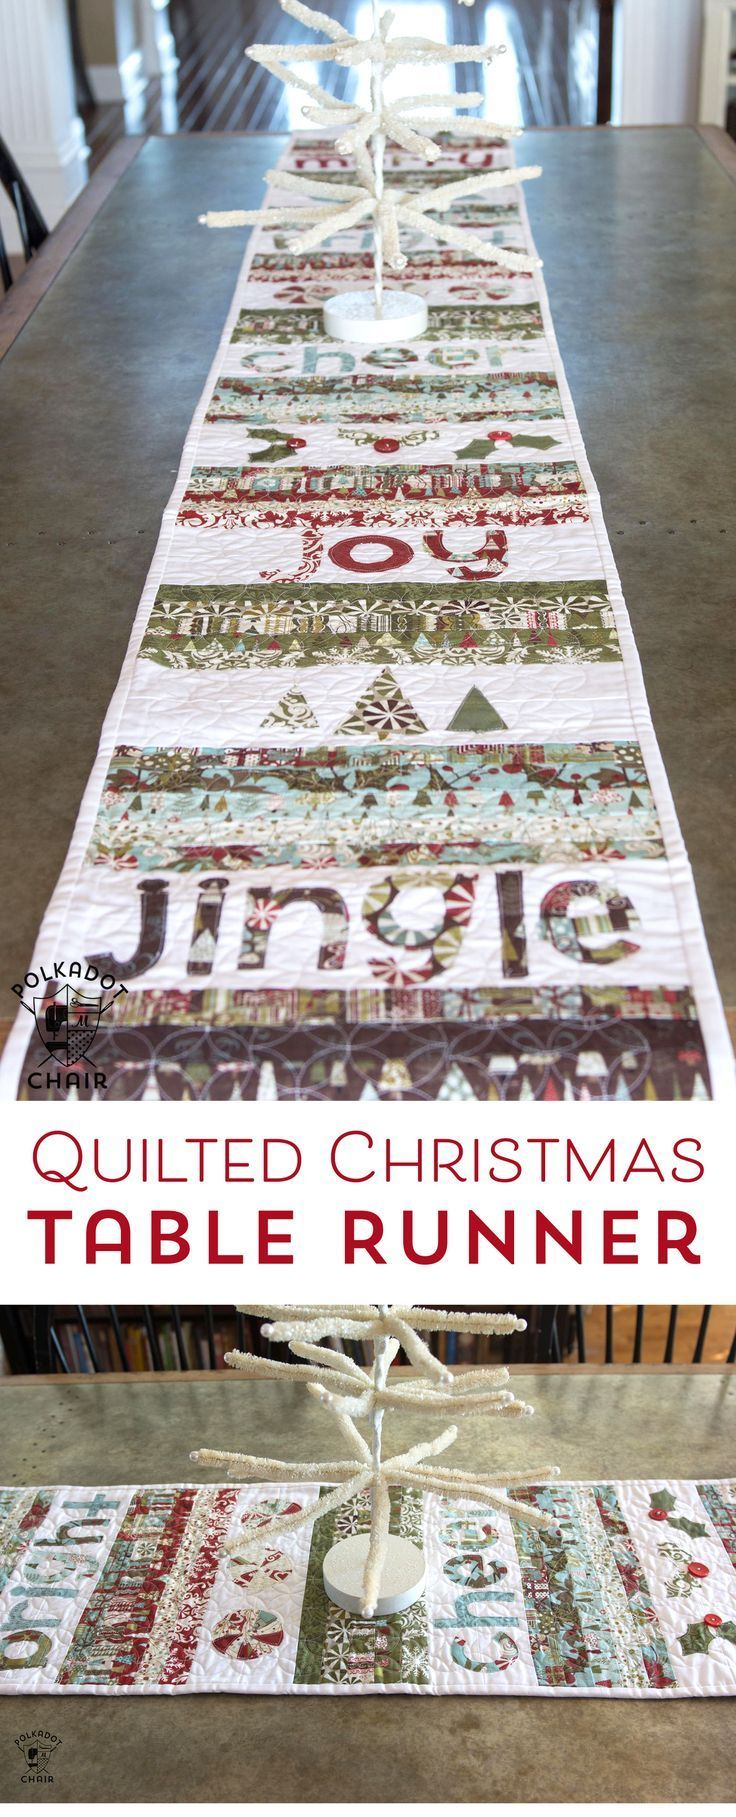 Merry & Cheer Quilted Christmas Table Runner Pattern | Christmas ...